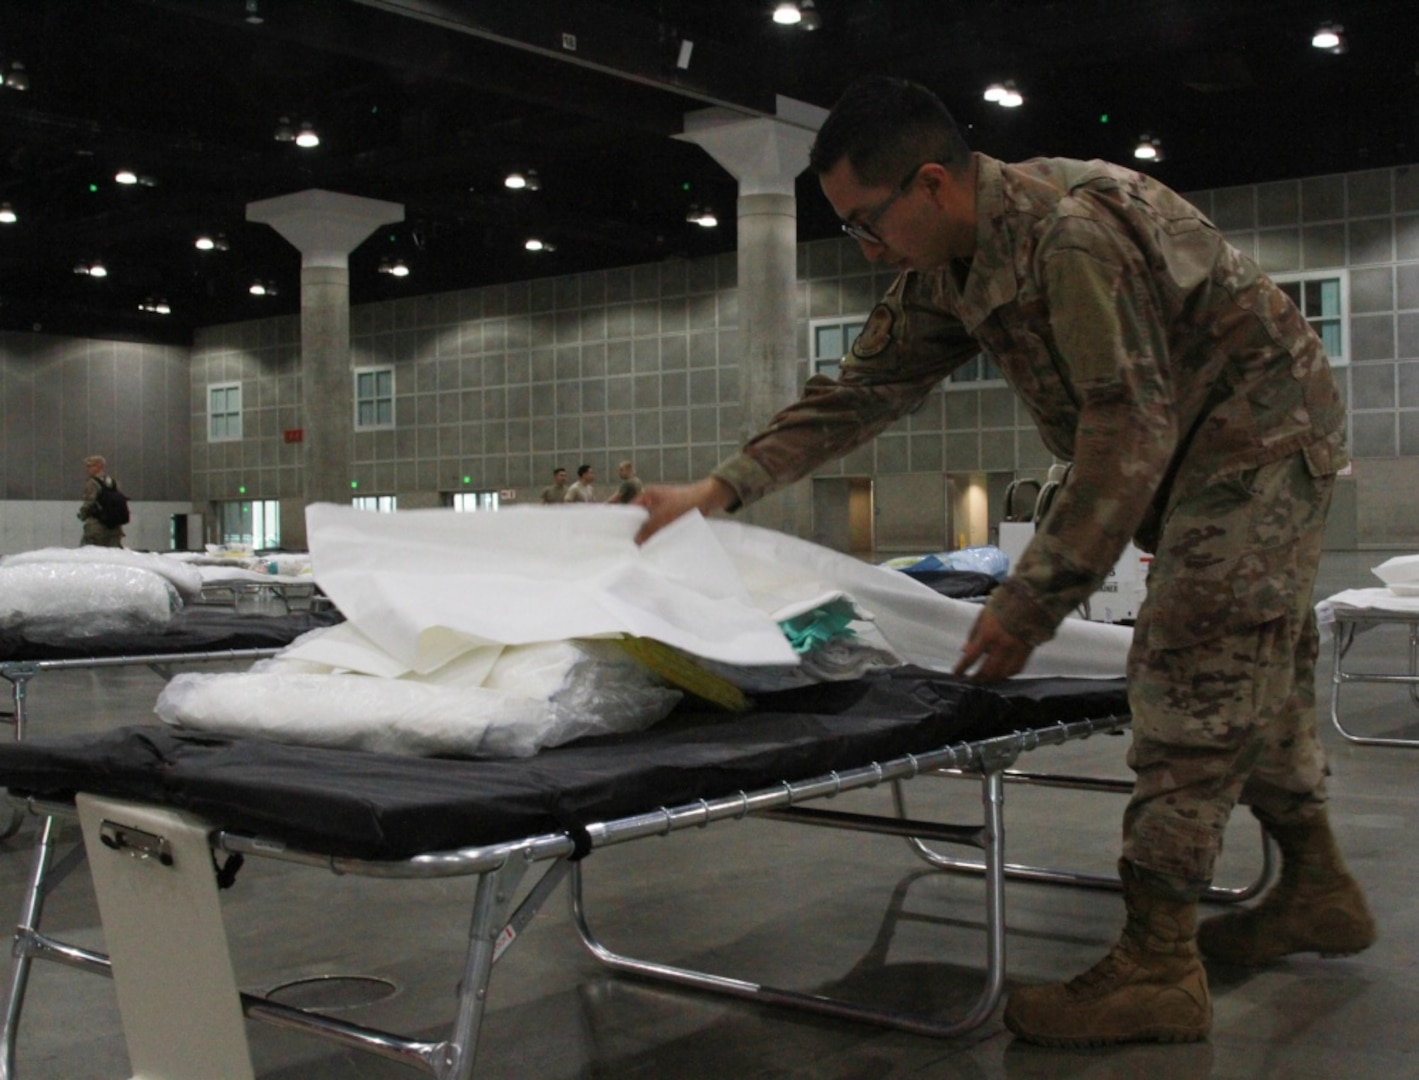 A photo of U.S. Air National Guard Tech. Sgt. Mario Lopez-Casas making a temporary hospital bed inside the Los Angeles Convention Center.